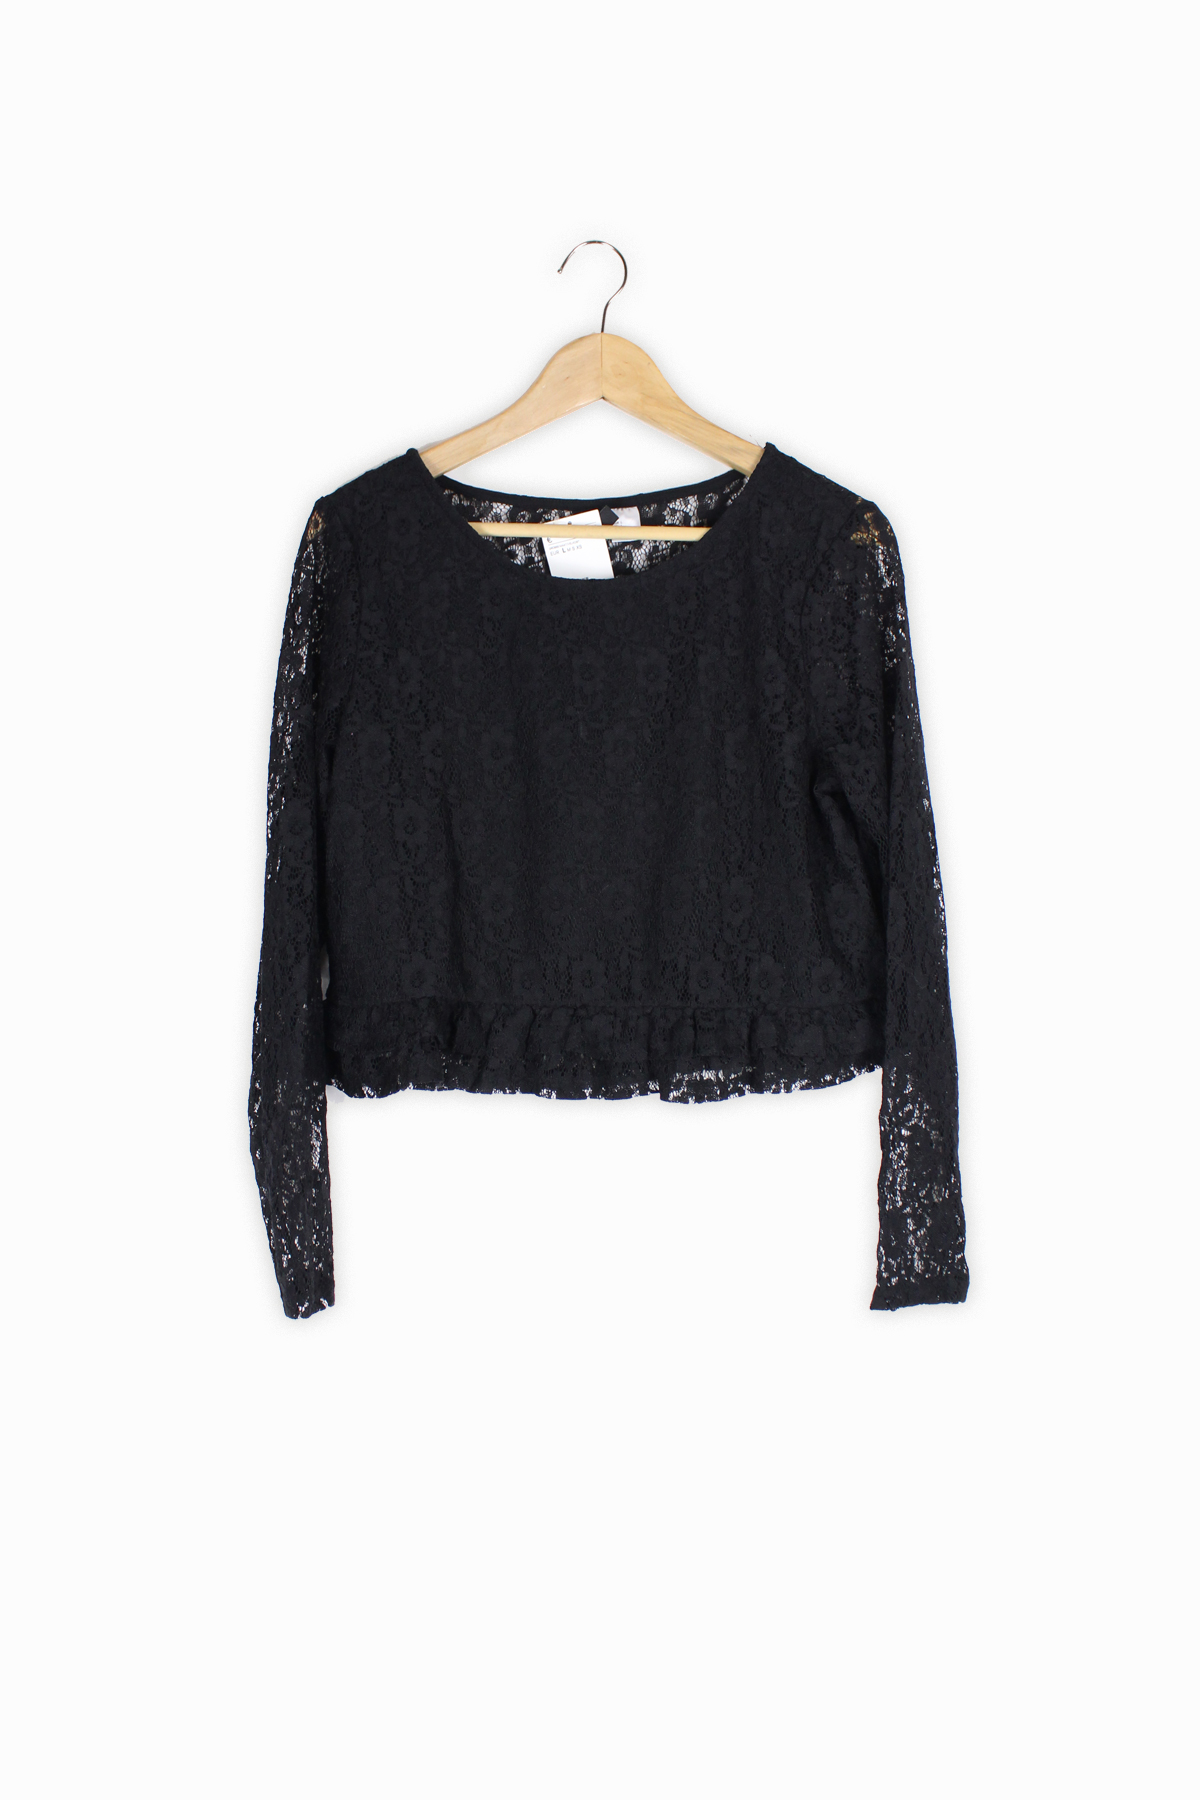 b1e8dc10b4c HomeWomenH&M black lace frill hem top Size L – Brand New with Tags.  Previous. Second Hand Clothes Pre-Owned Clothing | Oafo